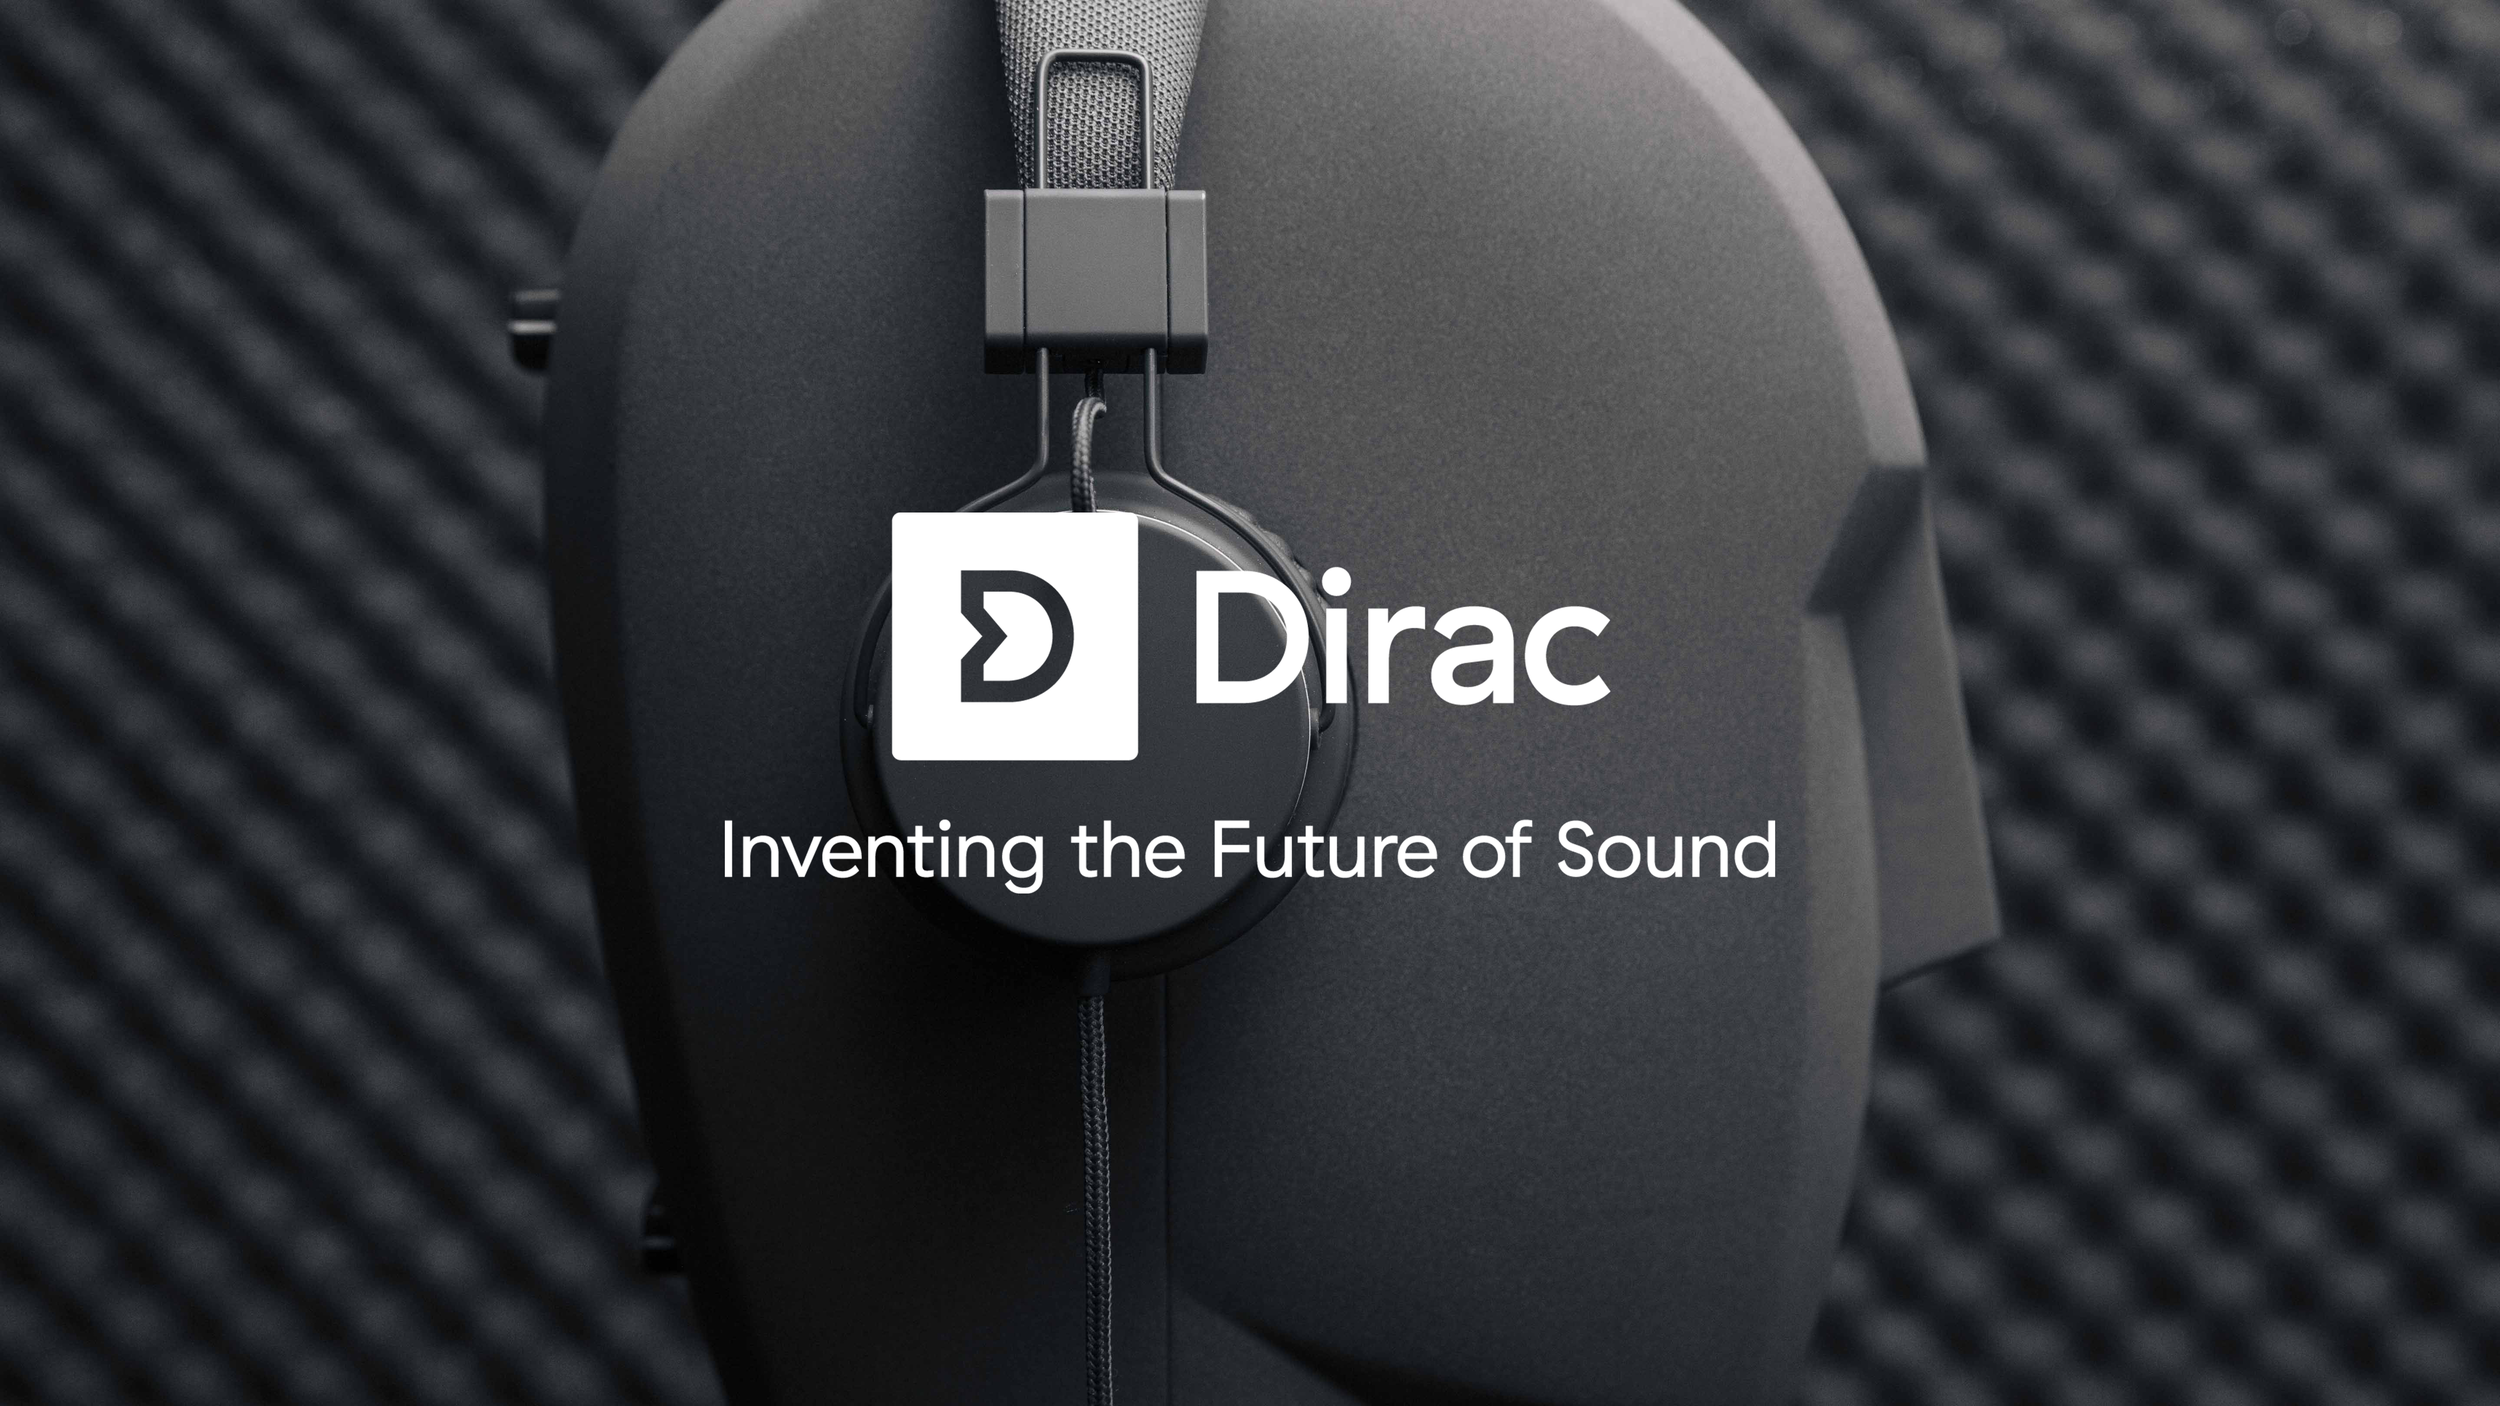 About Dirac - Dirac specializes in digital sound optimization solutions. Whether you're listening to music in your car, relaxing with headphones at home or using your mobile device as a makeshift boombox, audio quality can make or break the experience. Our digital audio solutions fundamentally improve sound quality across all devices for a pristine, dynamic and immersive listening experience.